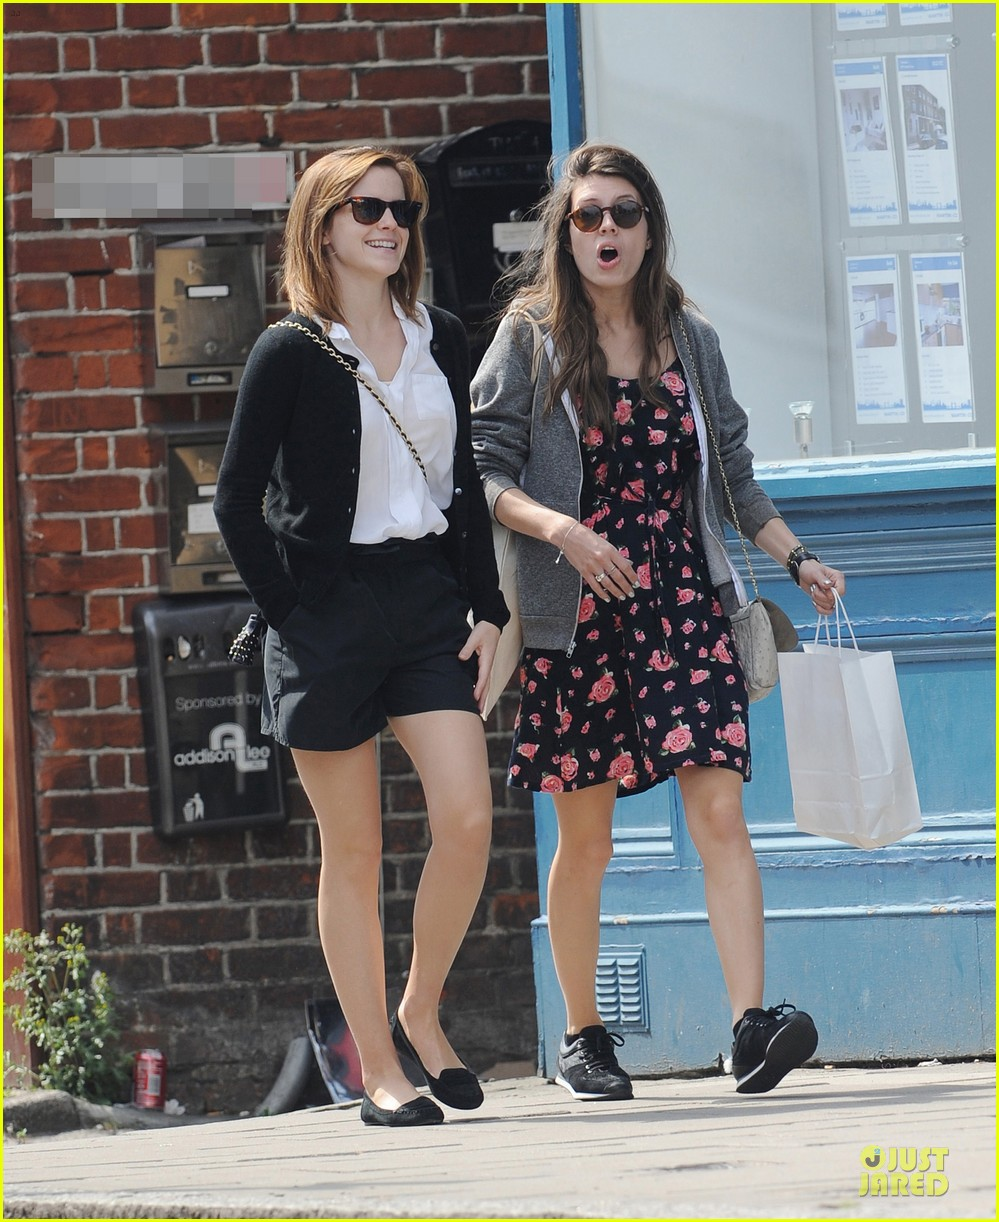 emma watson bling ring will screen at cannes film festival 032859171